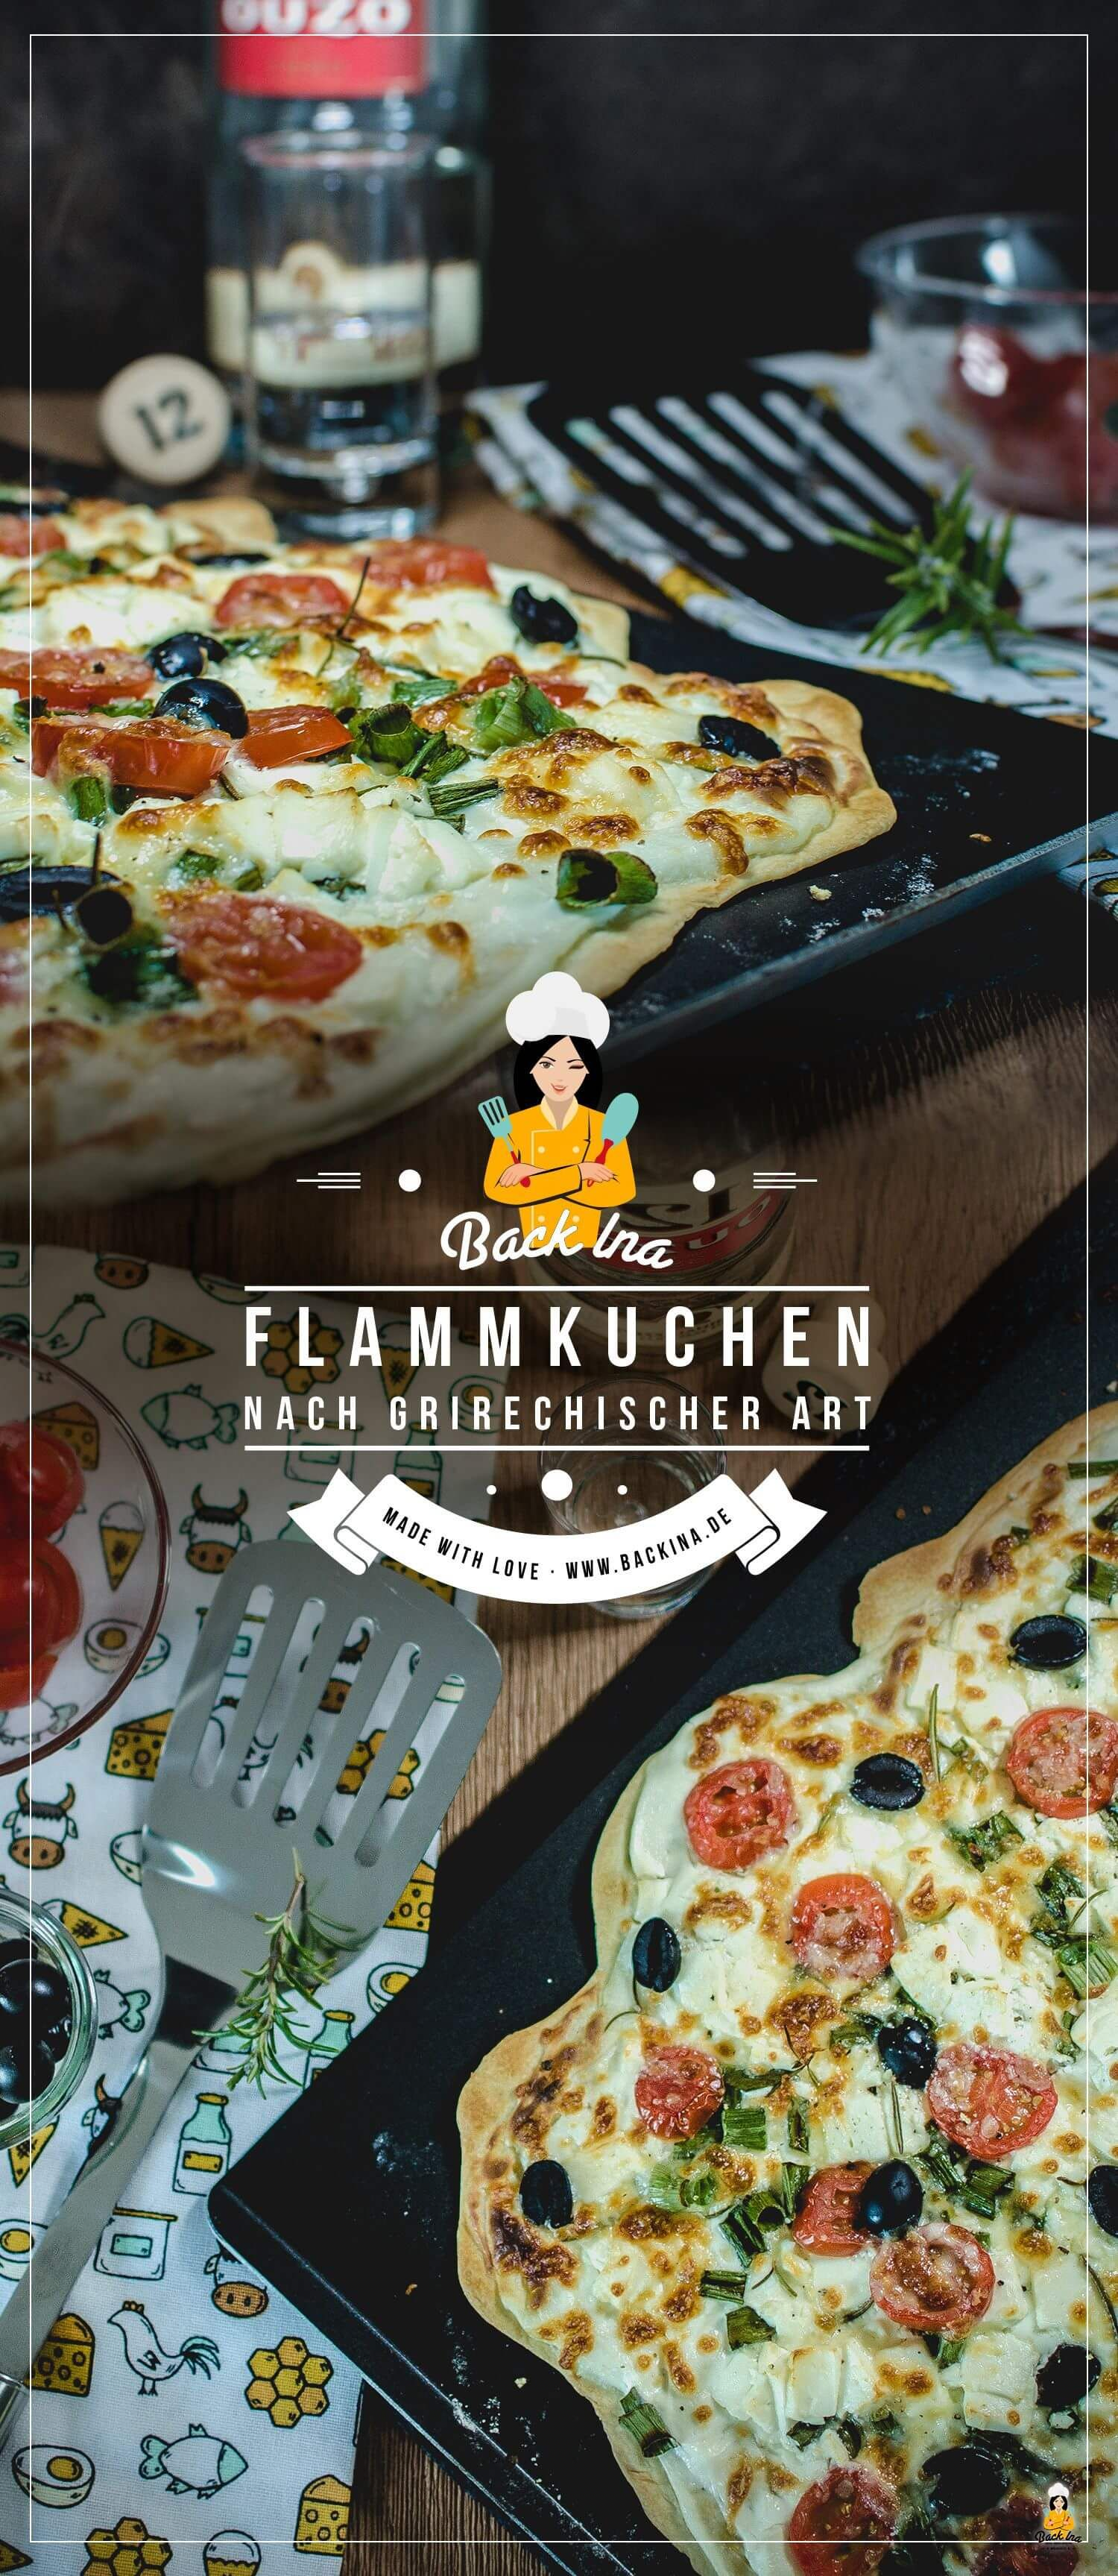 ultrad nne flammkuchen griechischer art vegetarisch brunchrezepte pinterest flammkuchen. Black Bedroom Furniture Sets. Home Design Ideas